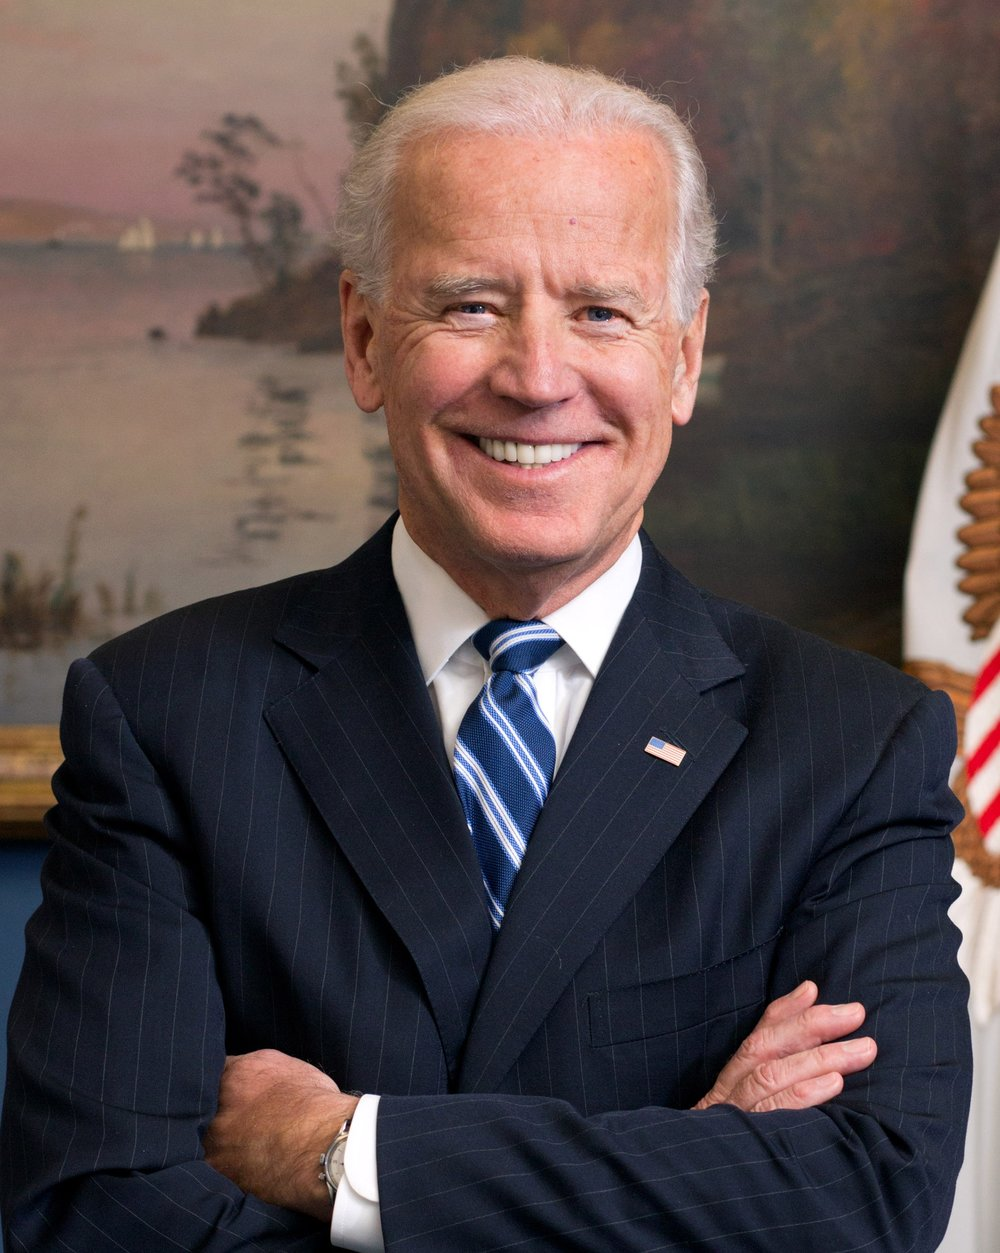 Official_portrait_of_Vice_President_Joe_Biden.jpg